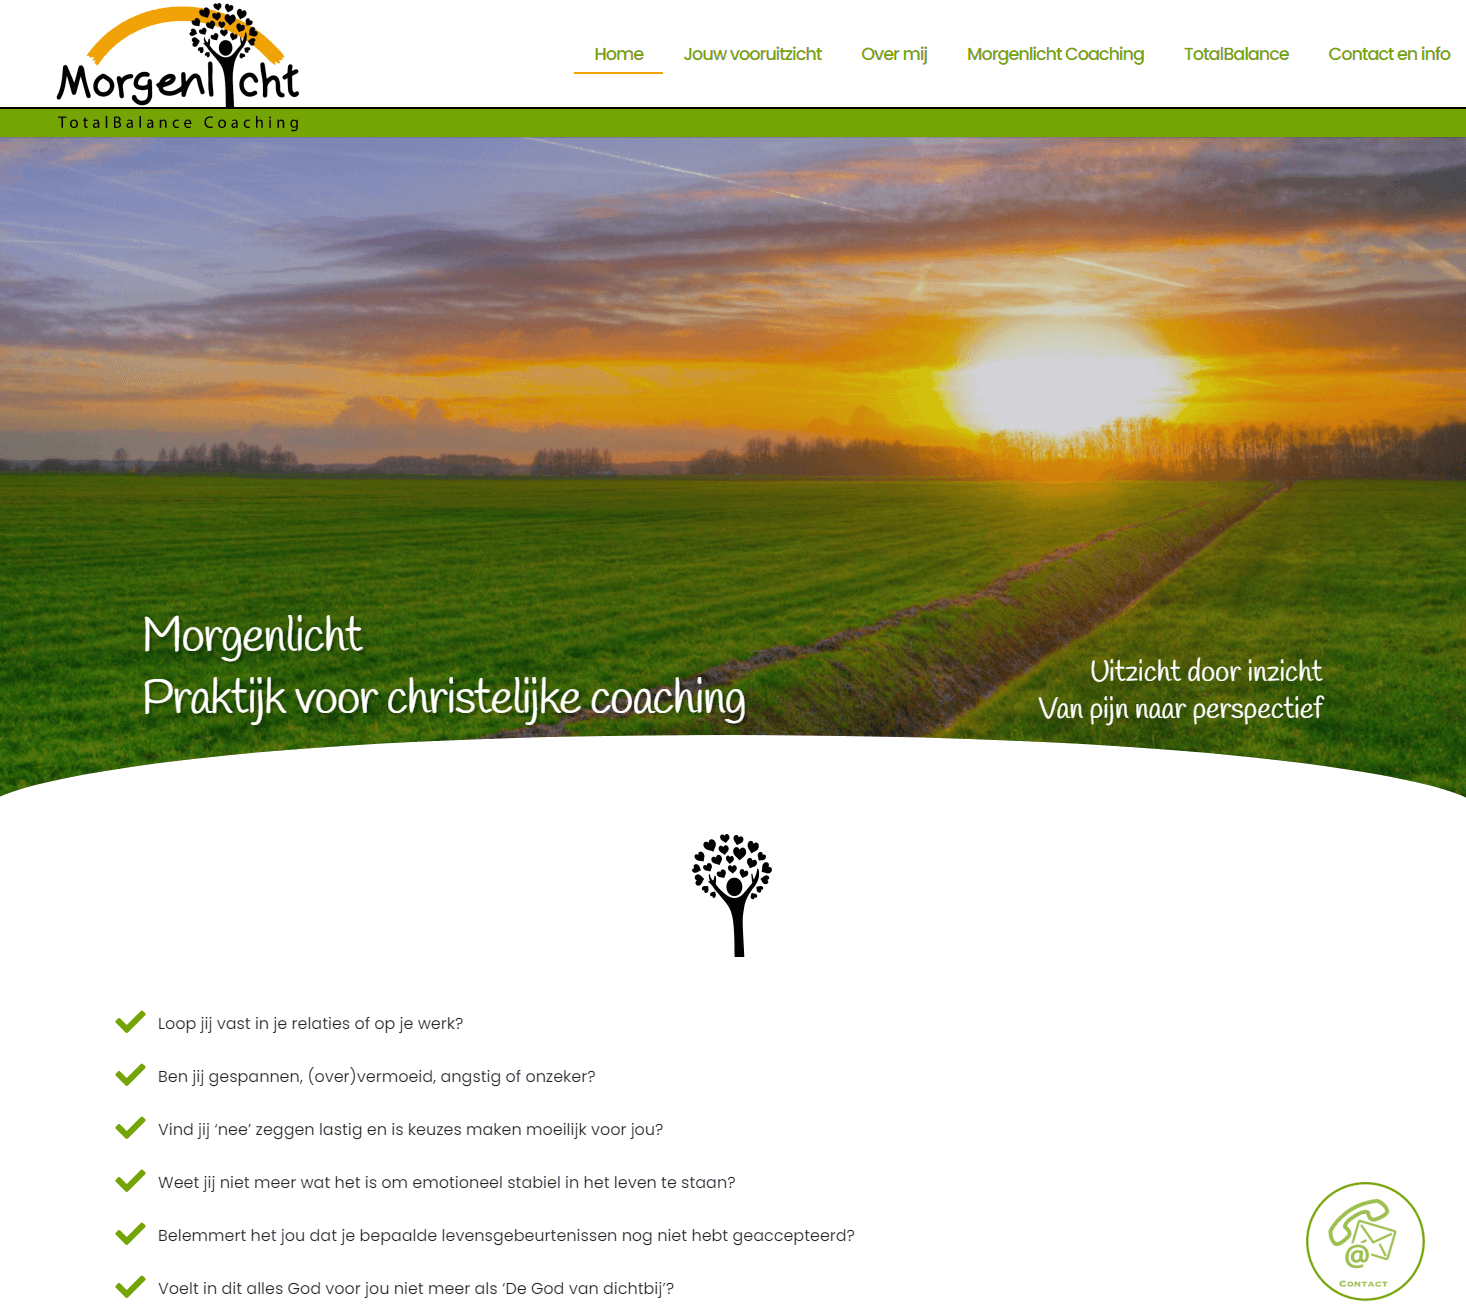 Morgenlicht Coaching home door Doeltreffend Online